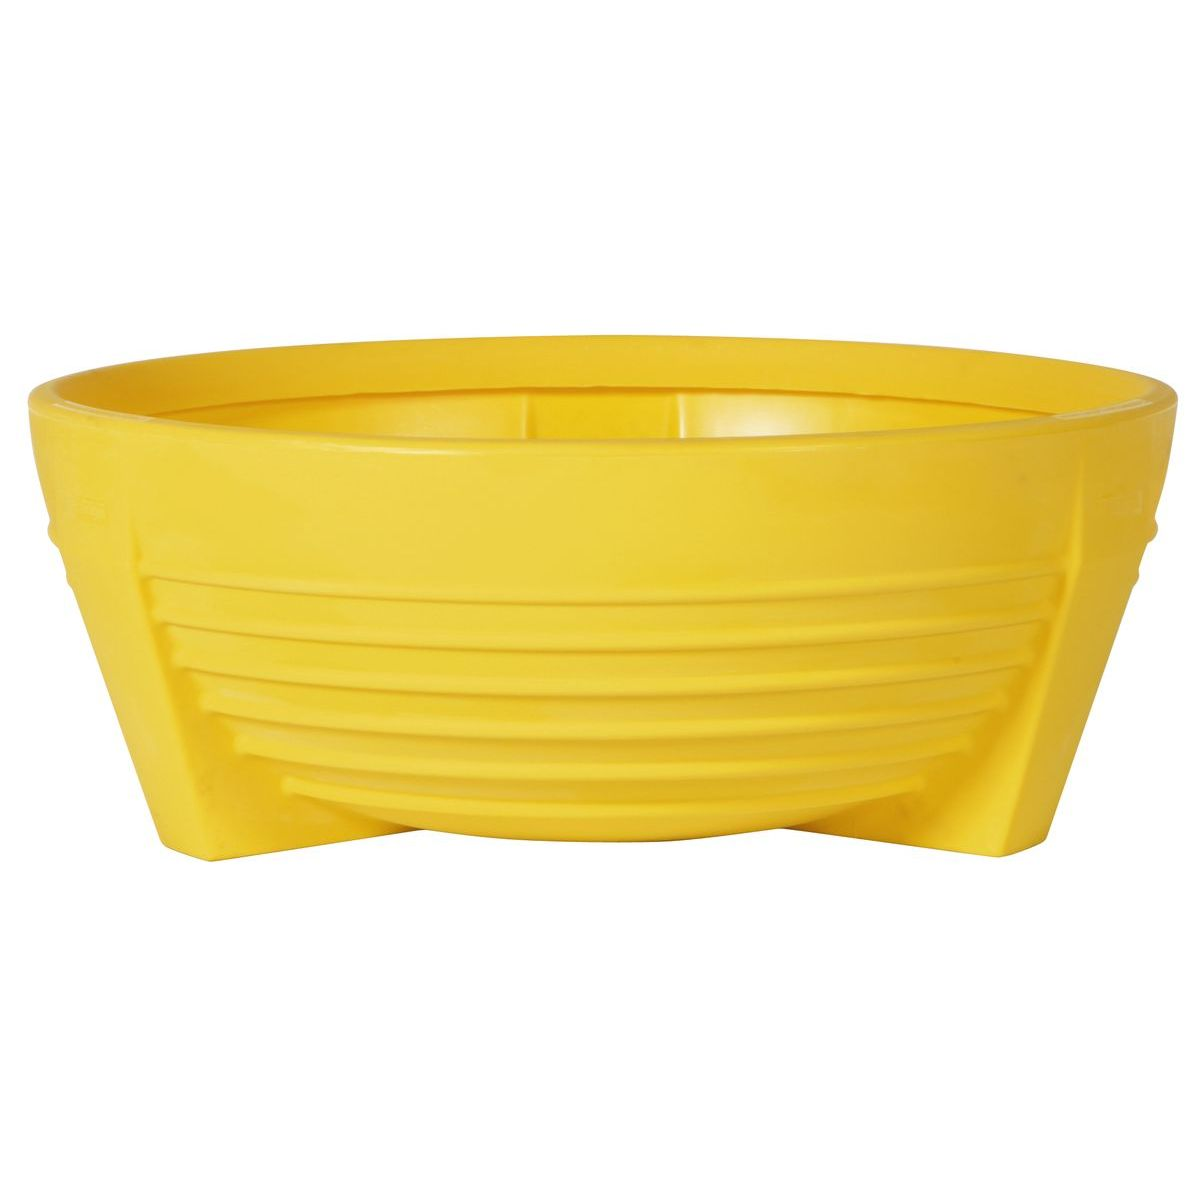 Yellow Flower box P-300-AMA